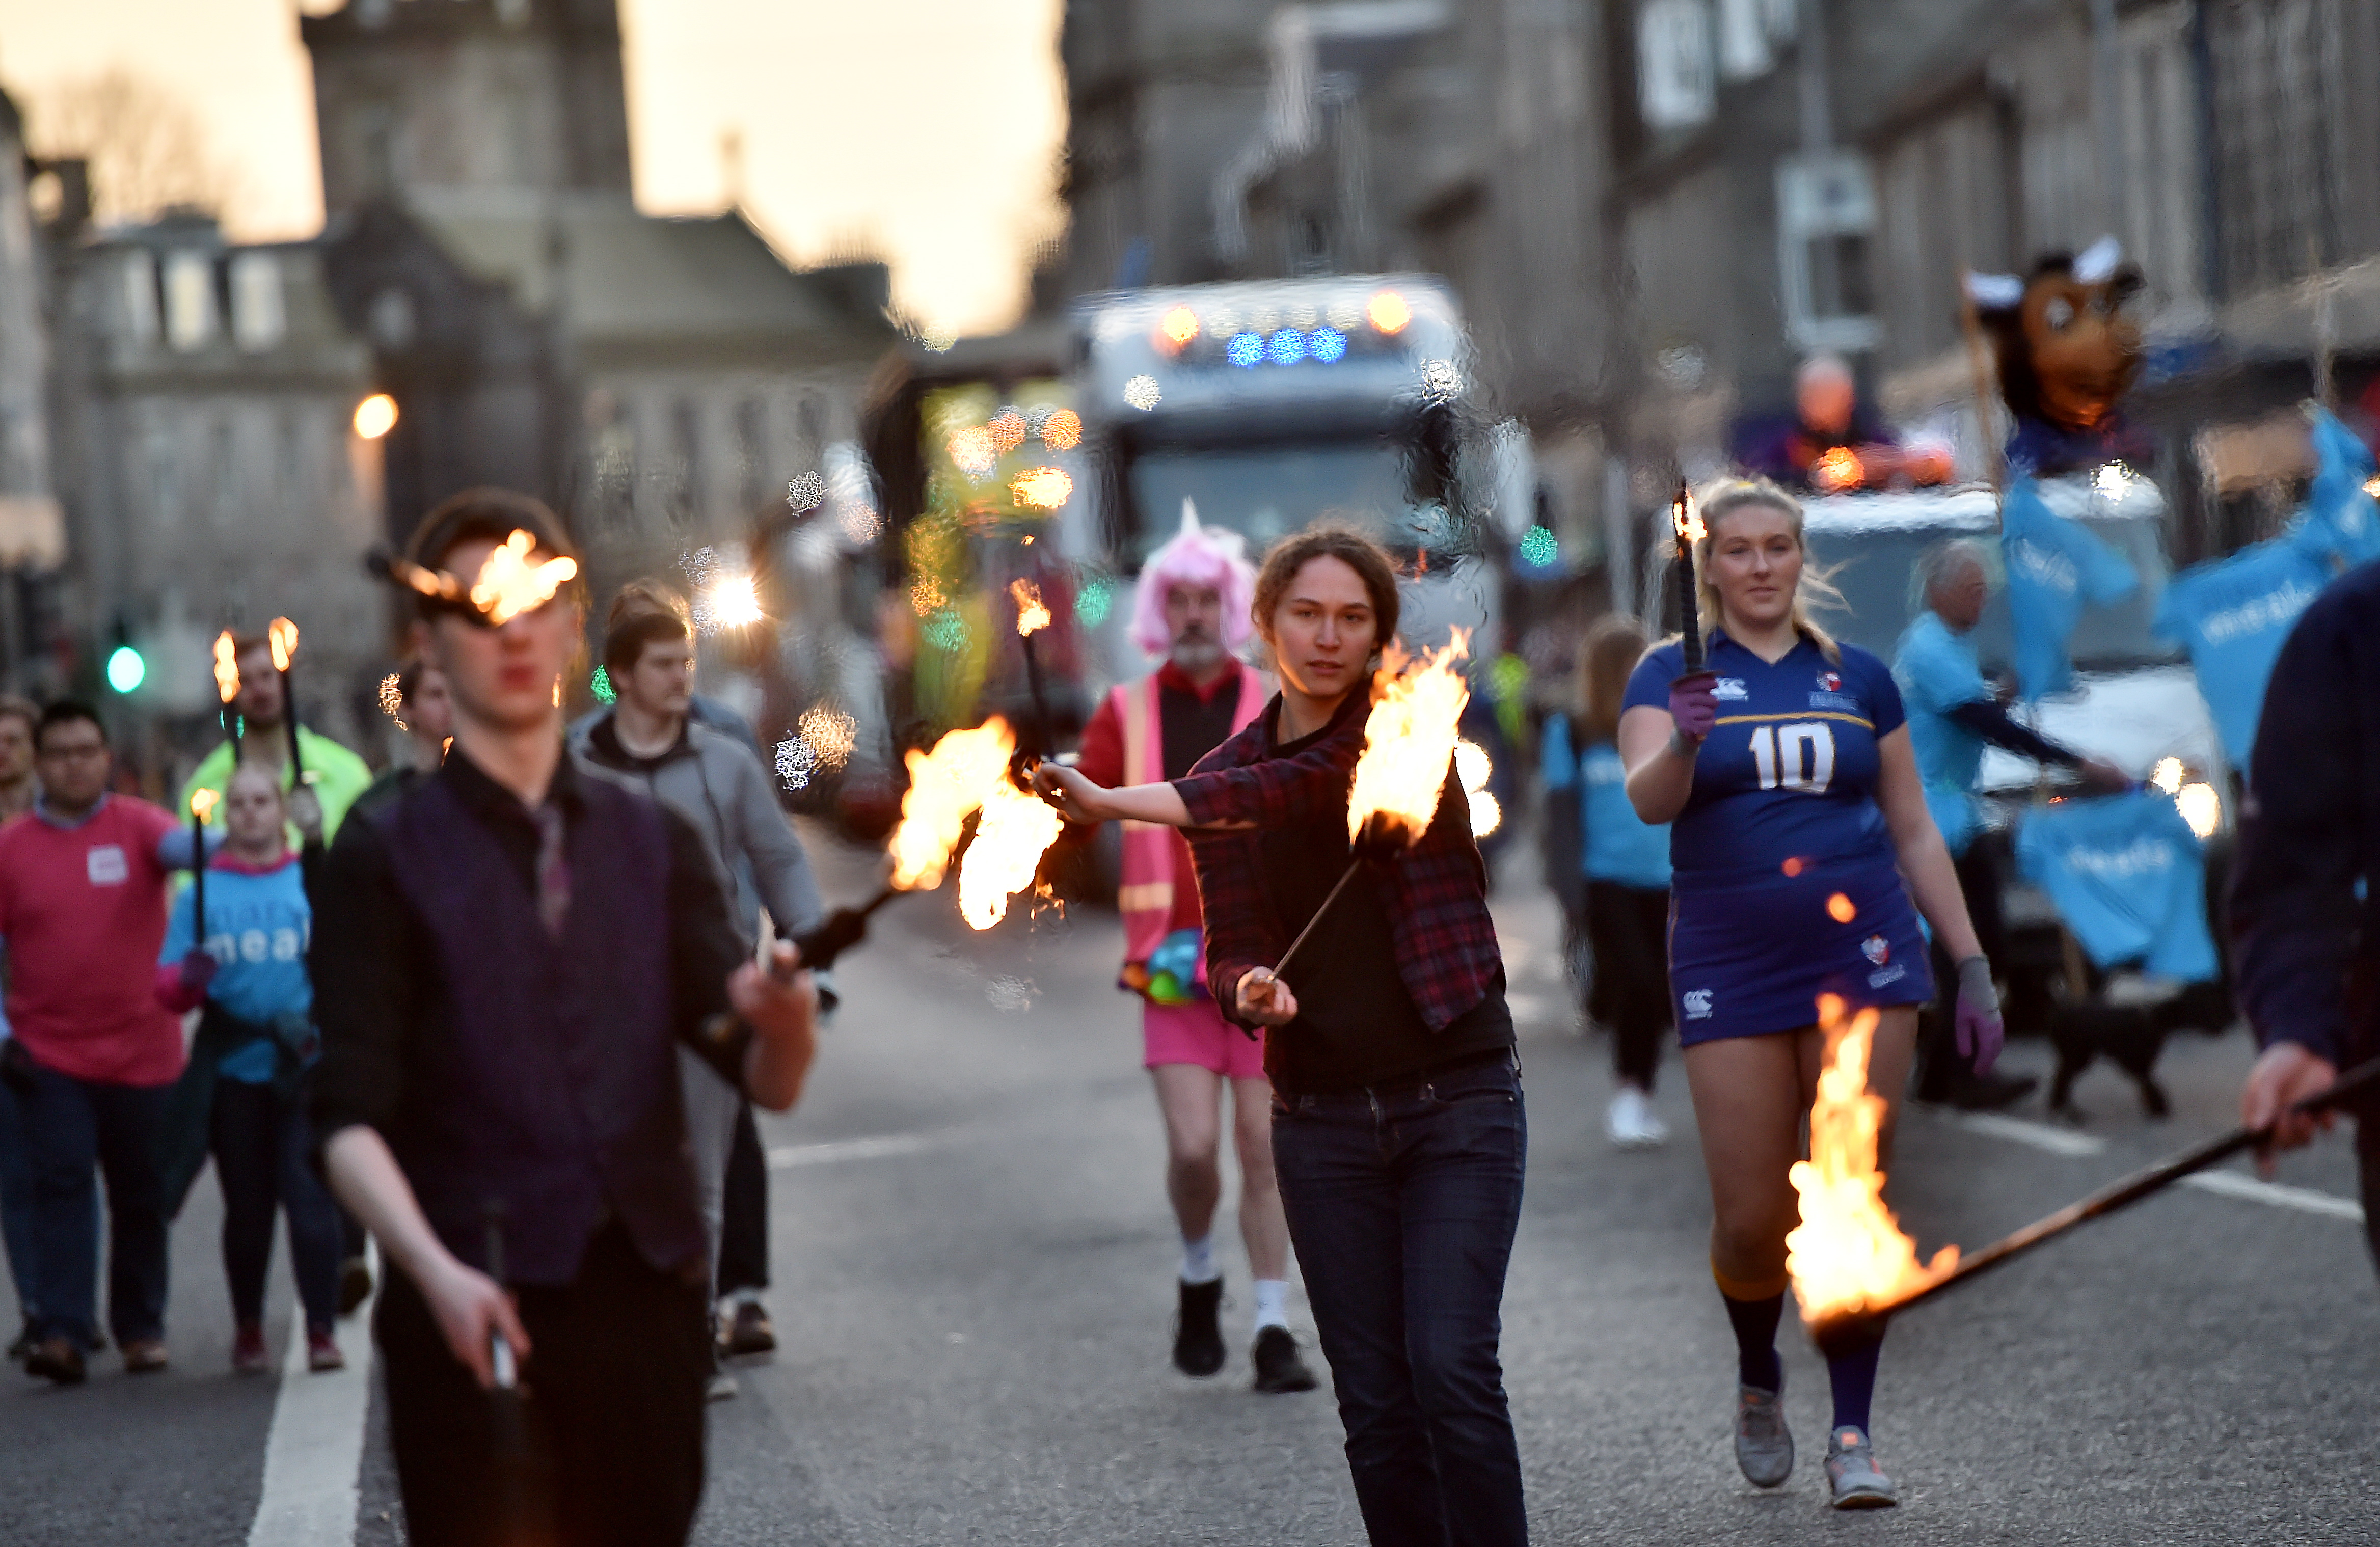 The torcher parade raised cash for charity